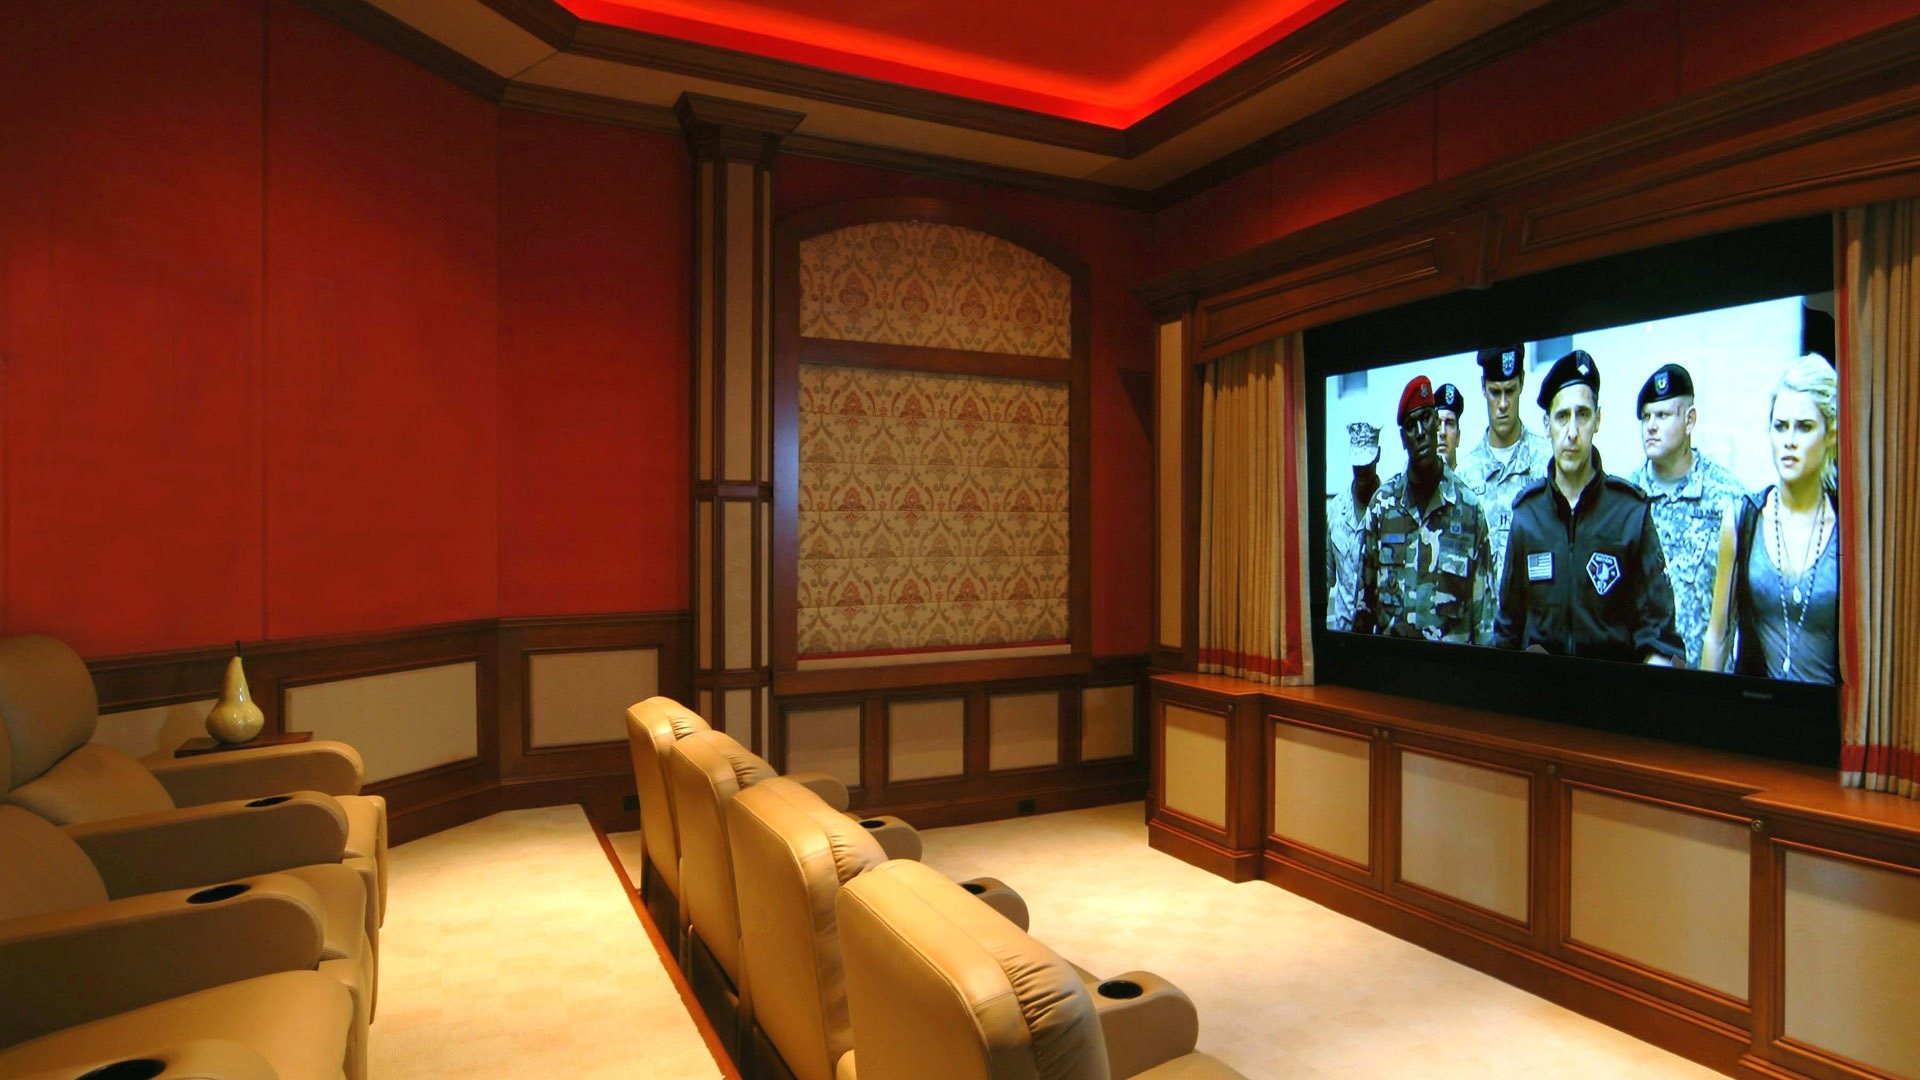 Home theater wallpaper 2 3 1920x1080 wallpaper for Wallpaper home theater